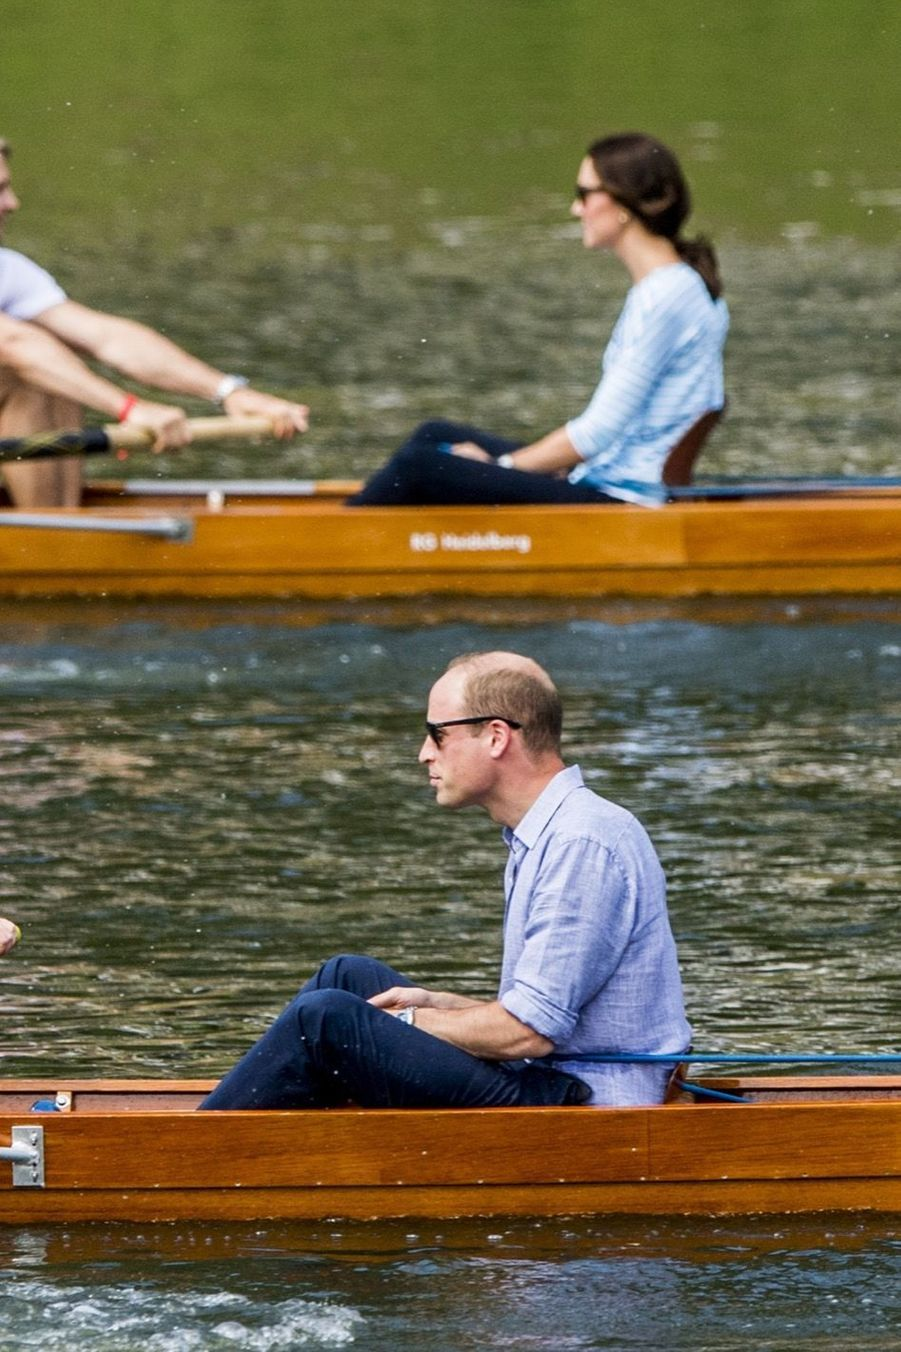 Kate Middleton Et William Font De L'aviron À Heidelberg En Allemagne 15